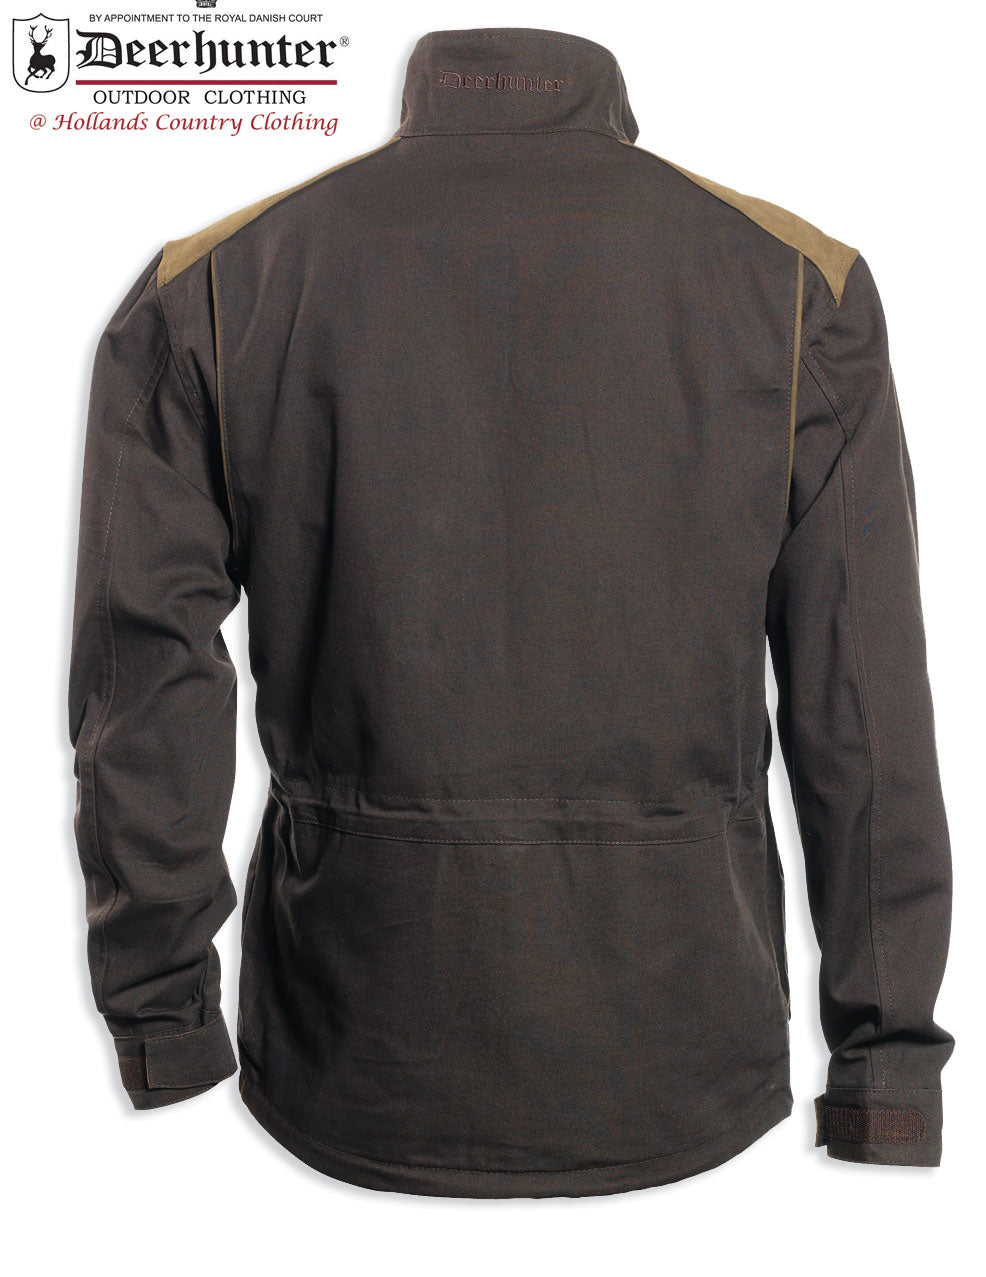 back view Deerhunter Monteria Hunting Jacket with leather shoulder patches